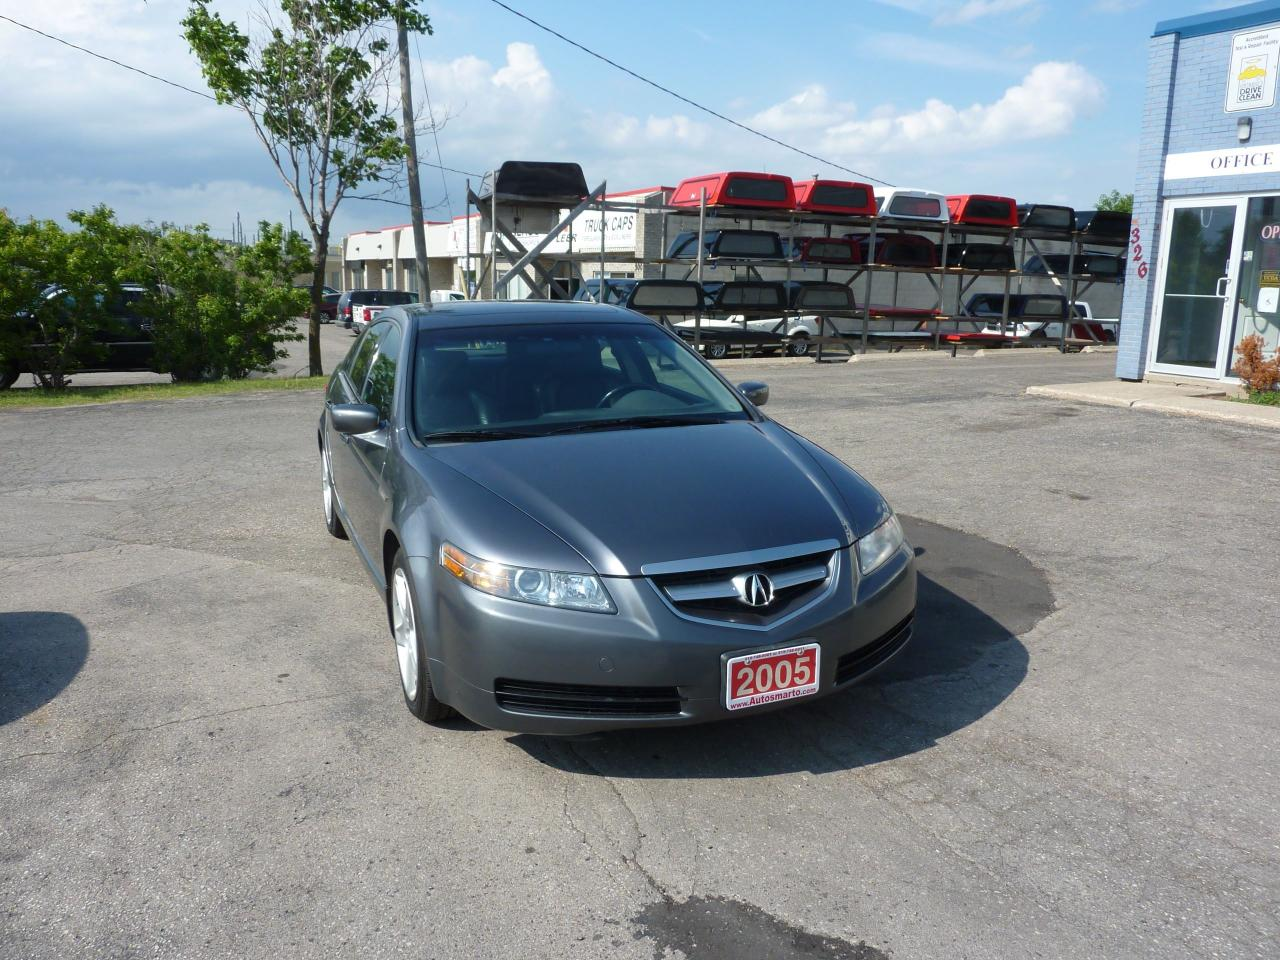 Used 2005 Acura TL LIKE NEW for Sale in Kitchener, Ontario | Carpages.ca